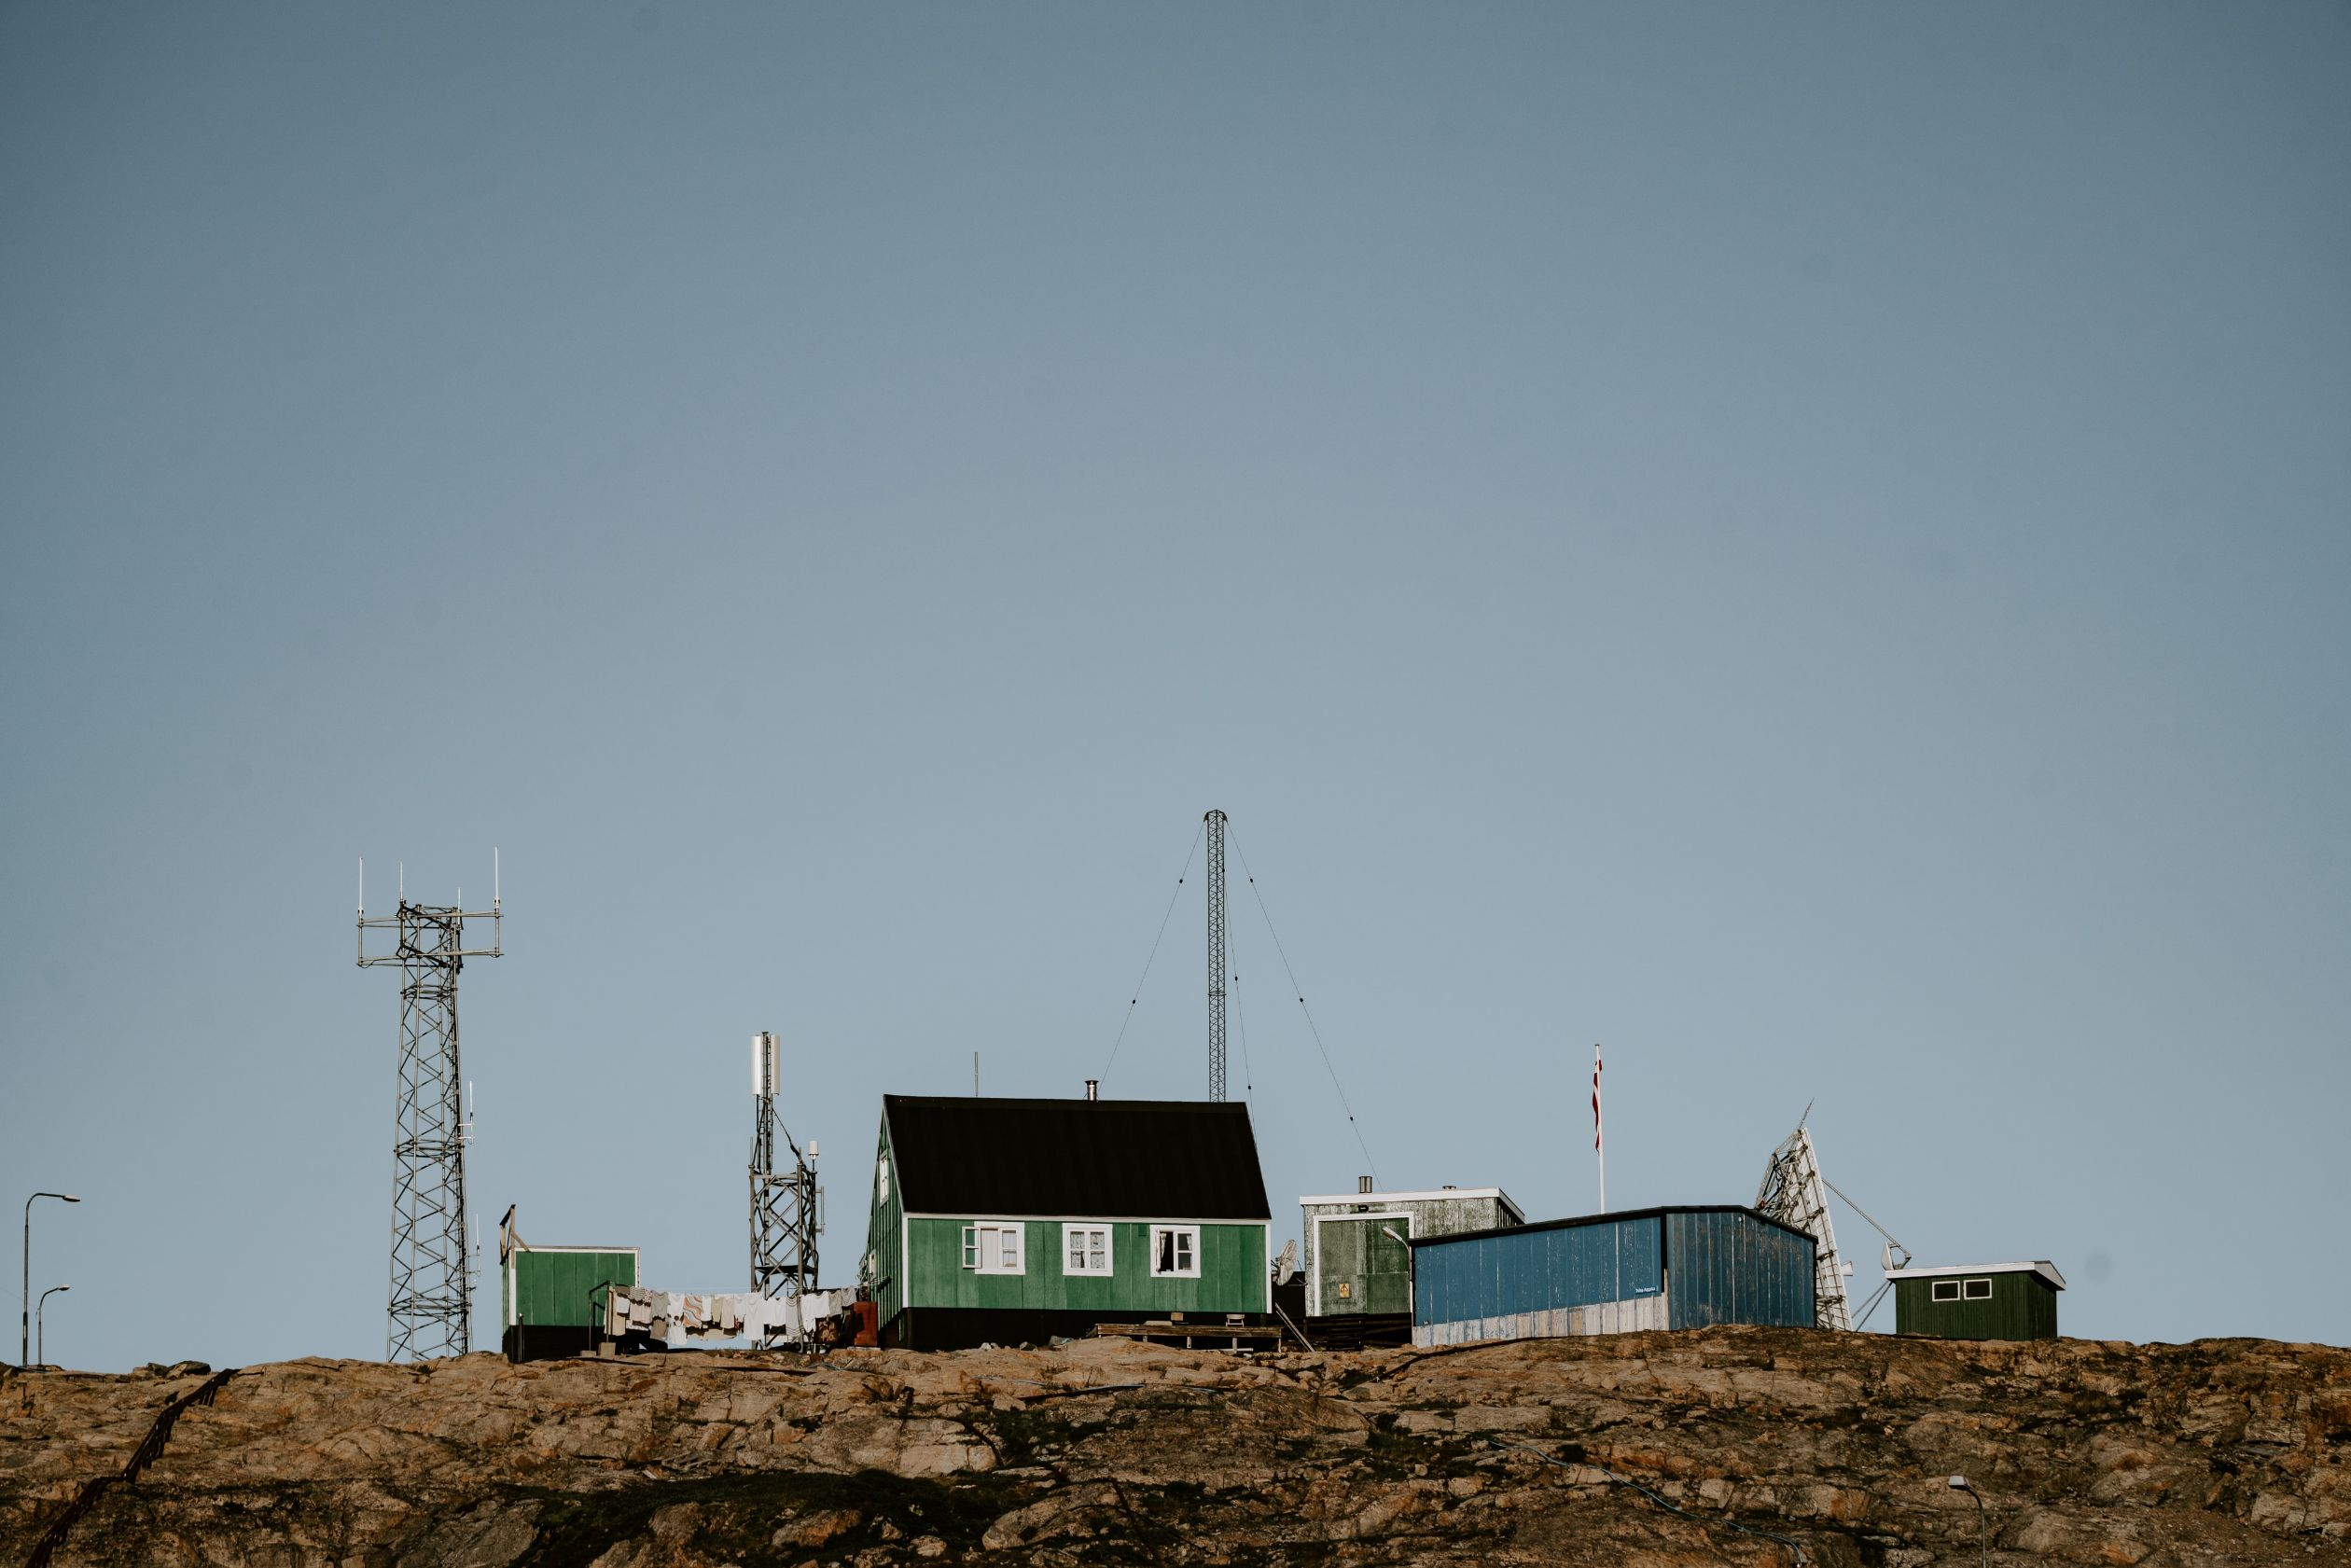 remote settlement in Greenland